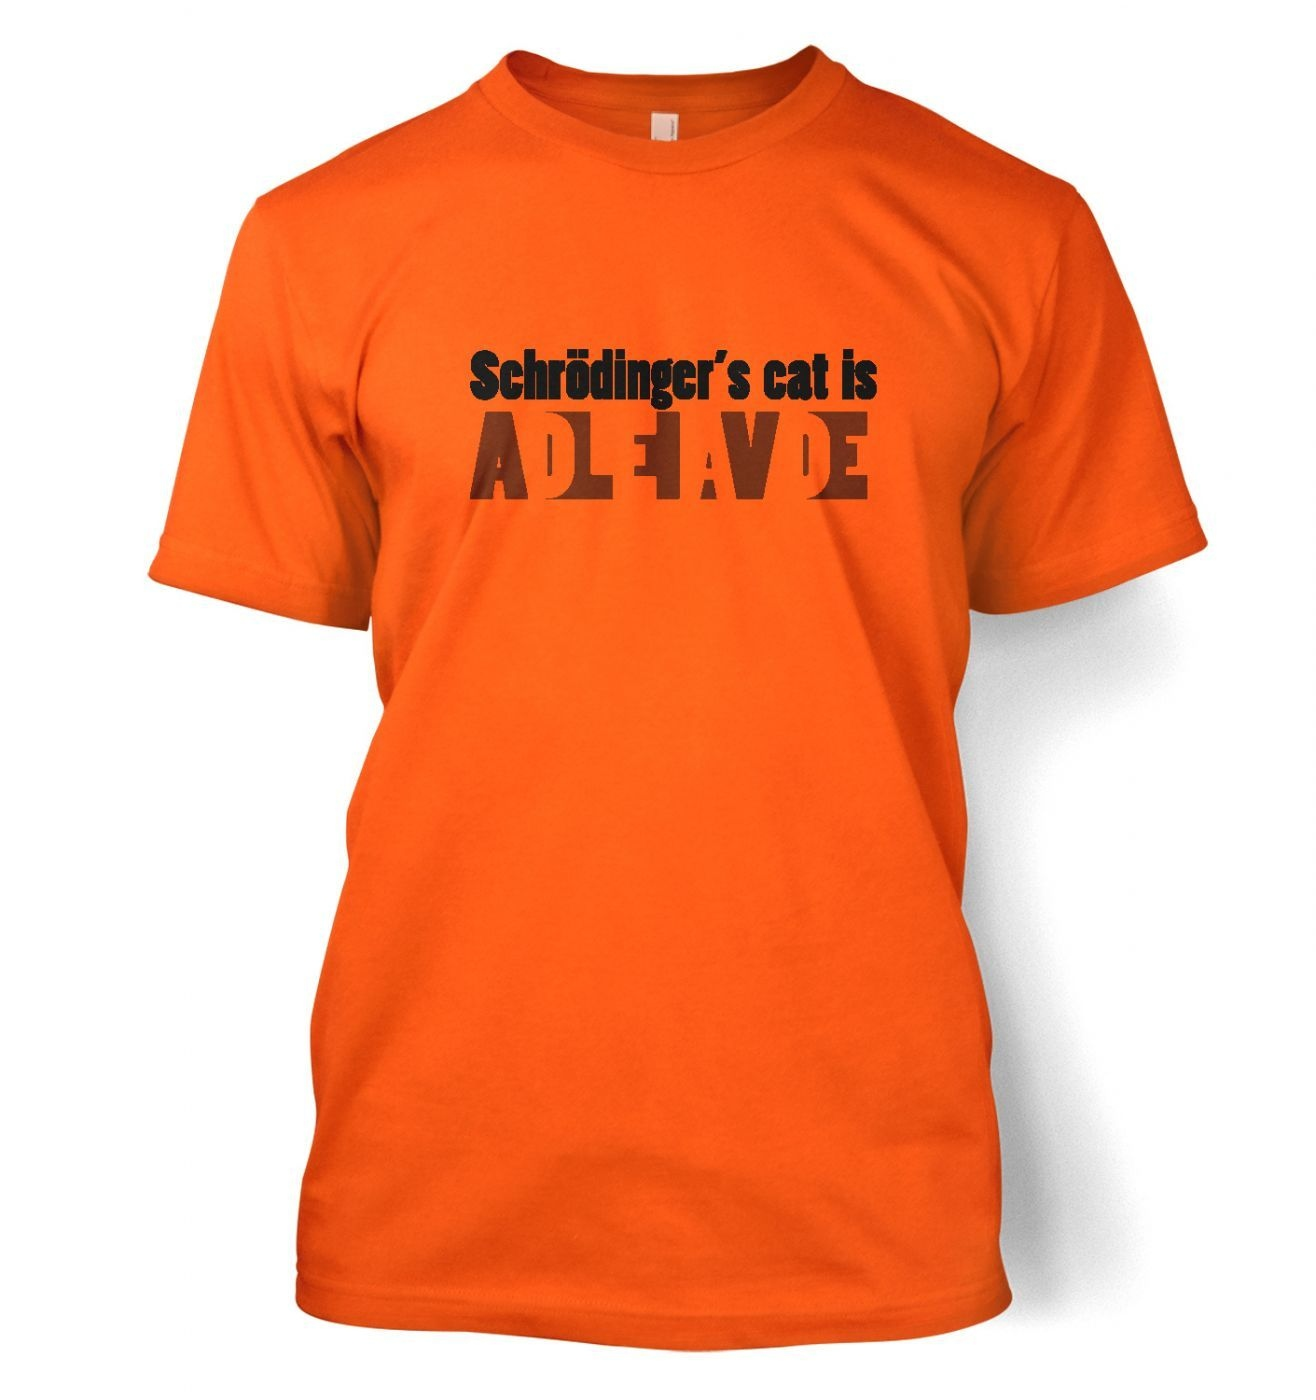 Schrodingers Cat Is Dead And Alive t-shirt